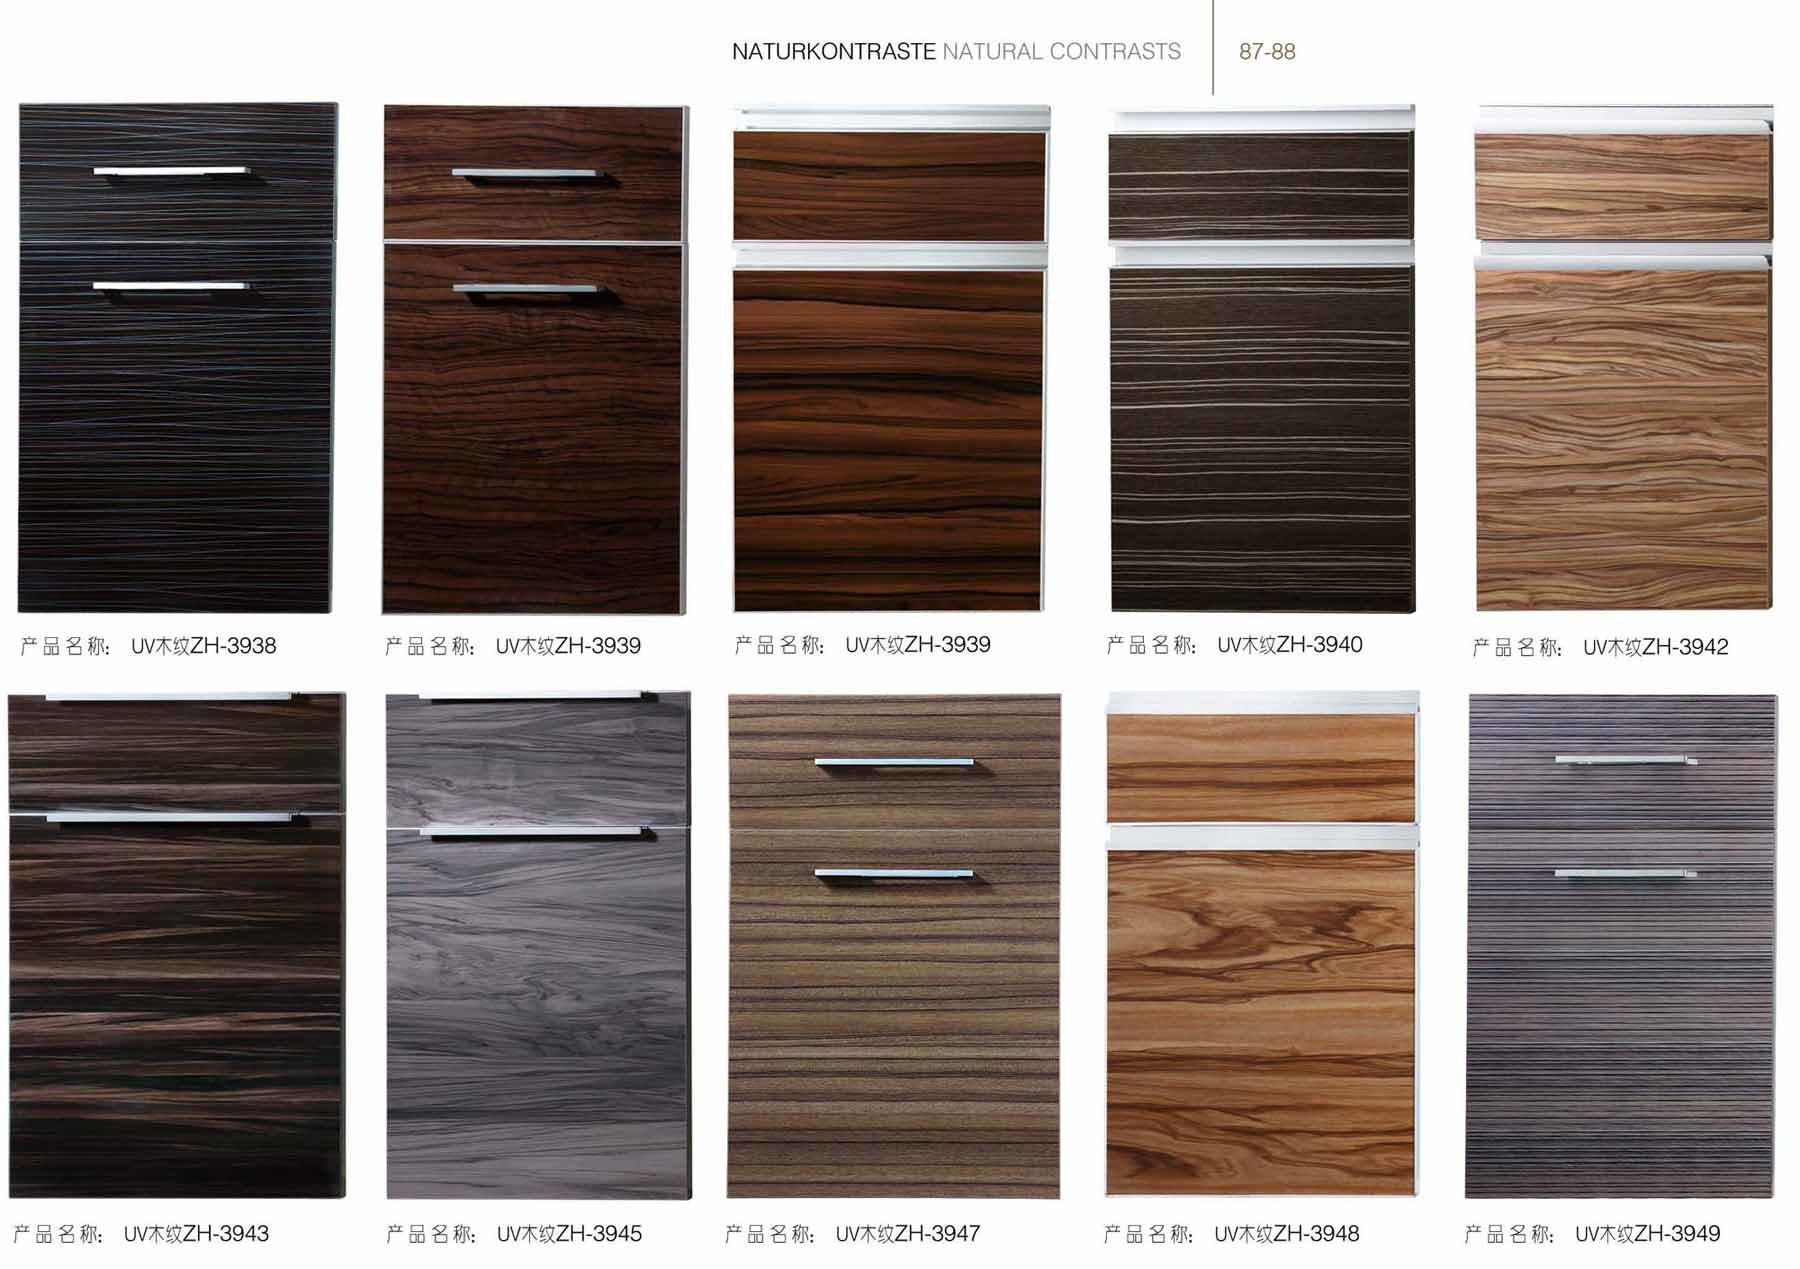 Guangzhou zhihua kitchen cabinet accessories factory - Cabinet Doors Guangzhou Zhihua Kitchen Cabinet Accessories